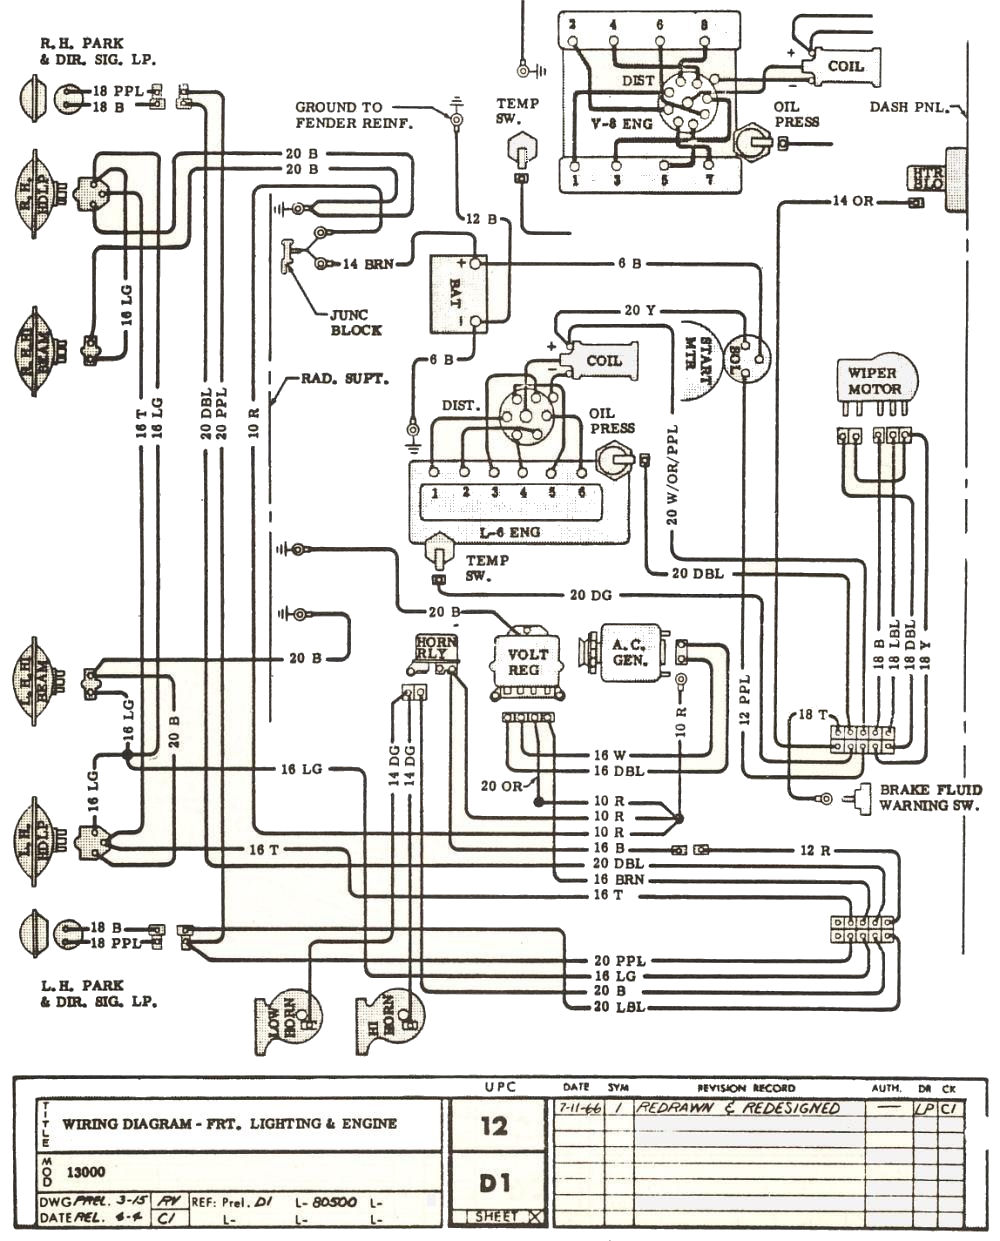 [WRG-7511] 67 Chevelle Dash Wiring Diagram